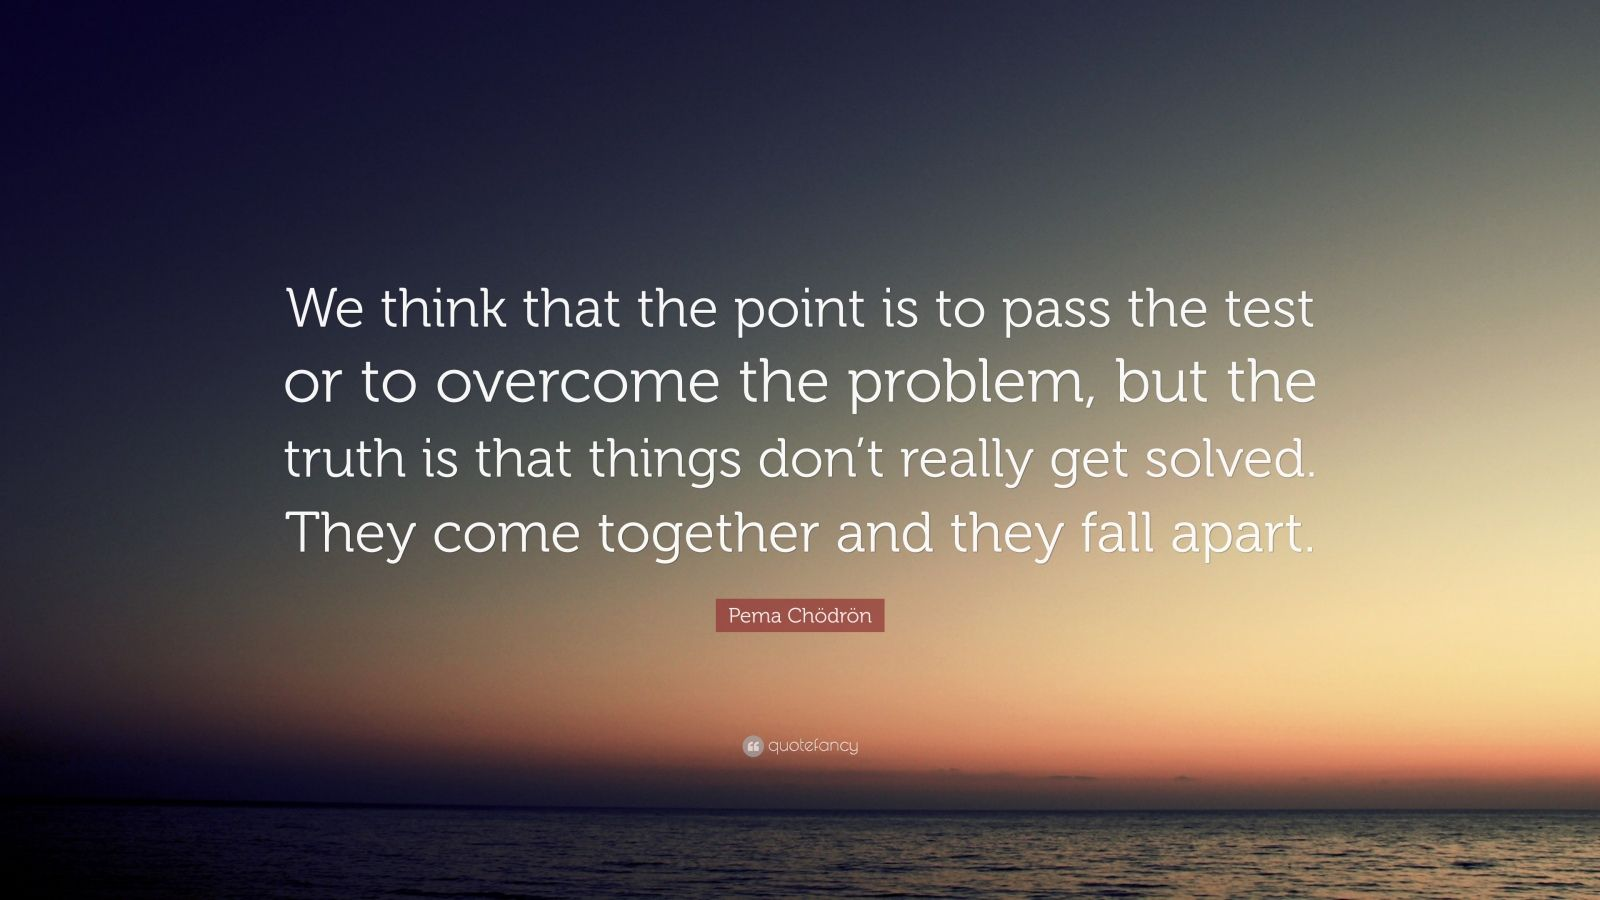 "Pema Chödrön Quote: ""We think that the point is to pass the test or to overcome the problem, but the truth is that things don't really get solved. They come together and they fall apart."""